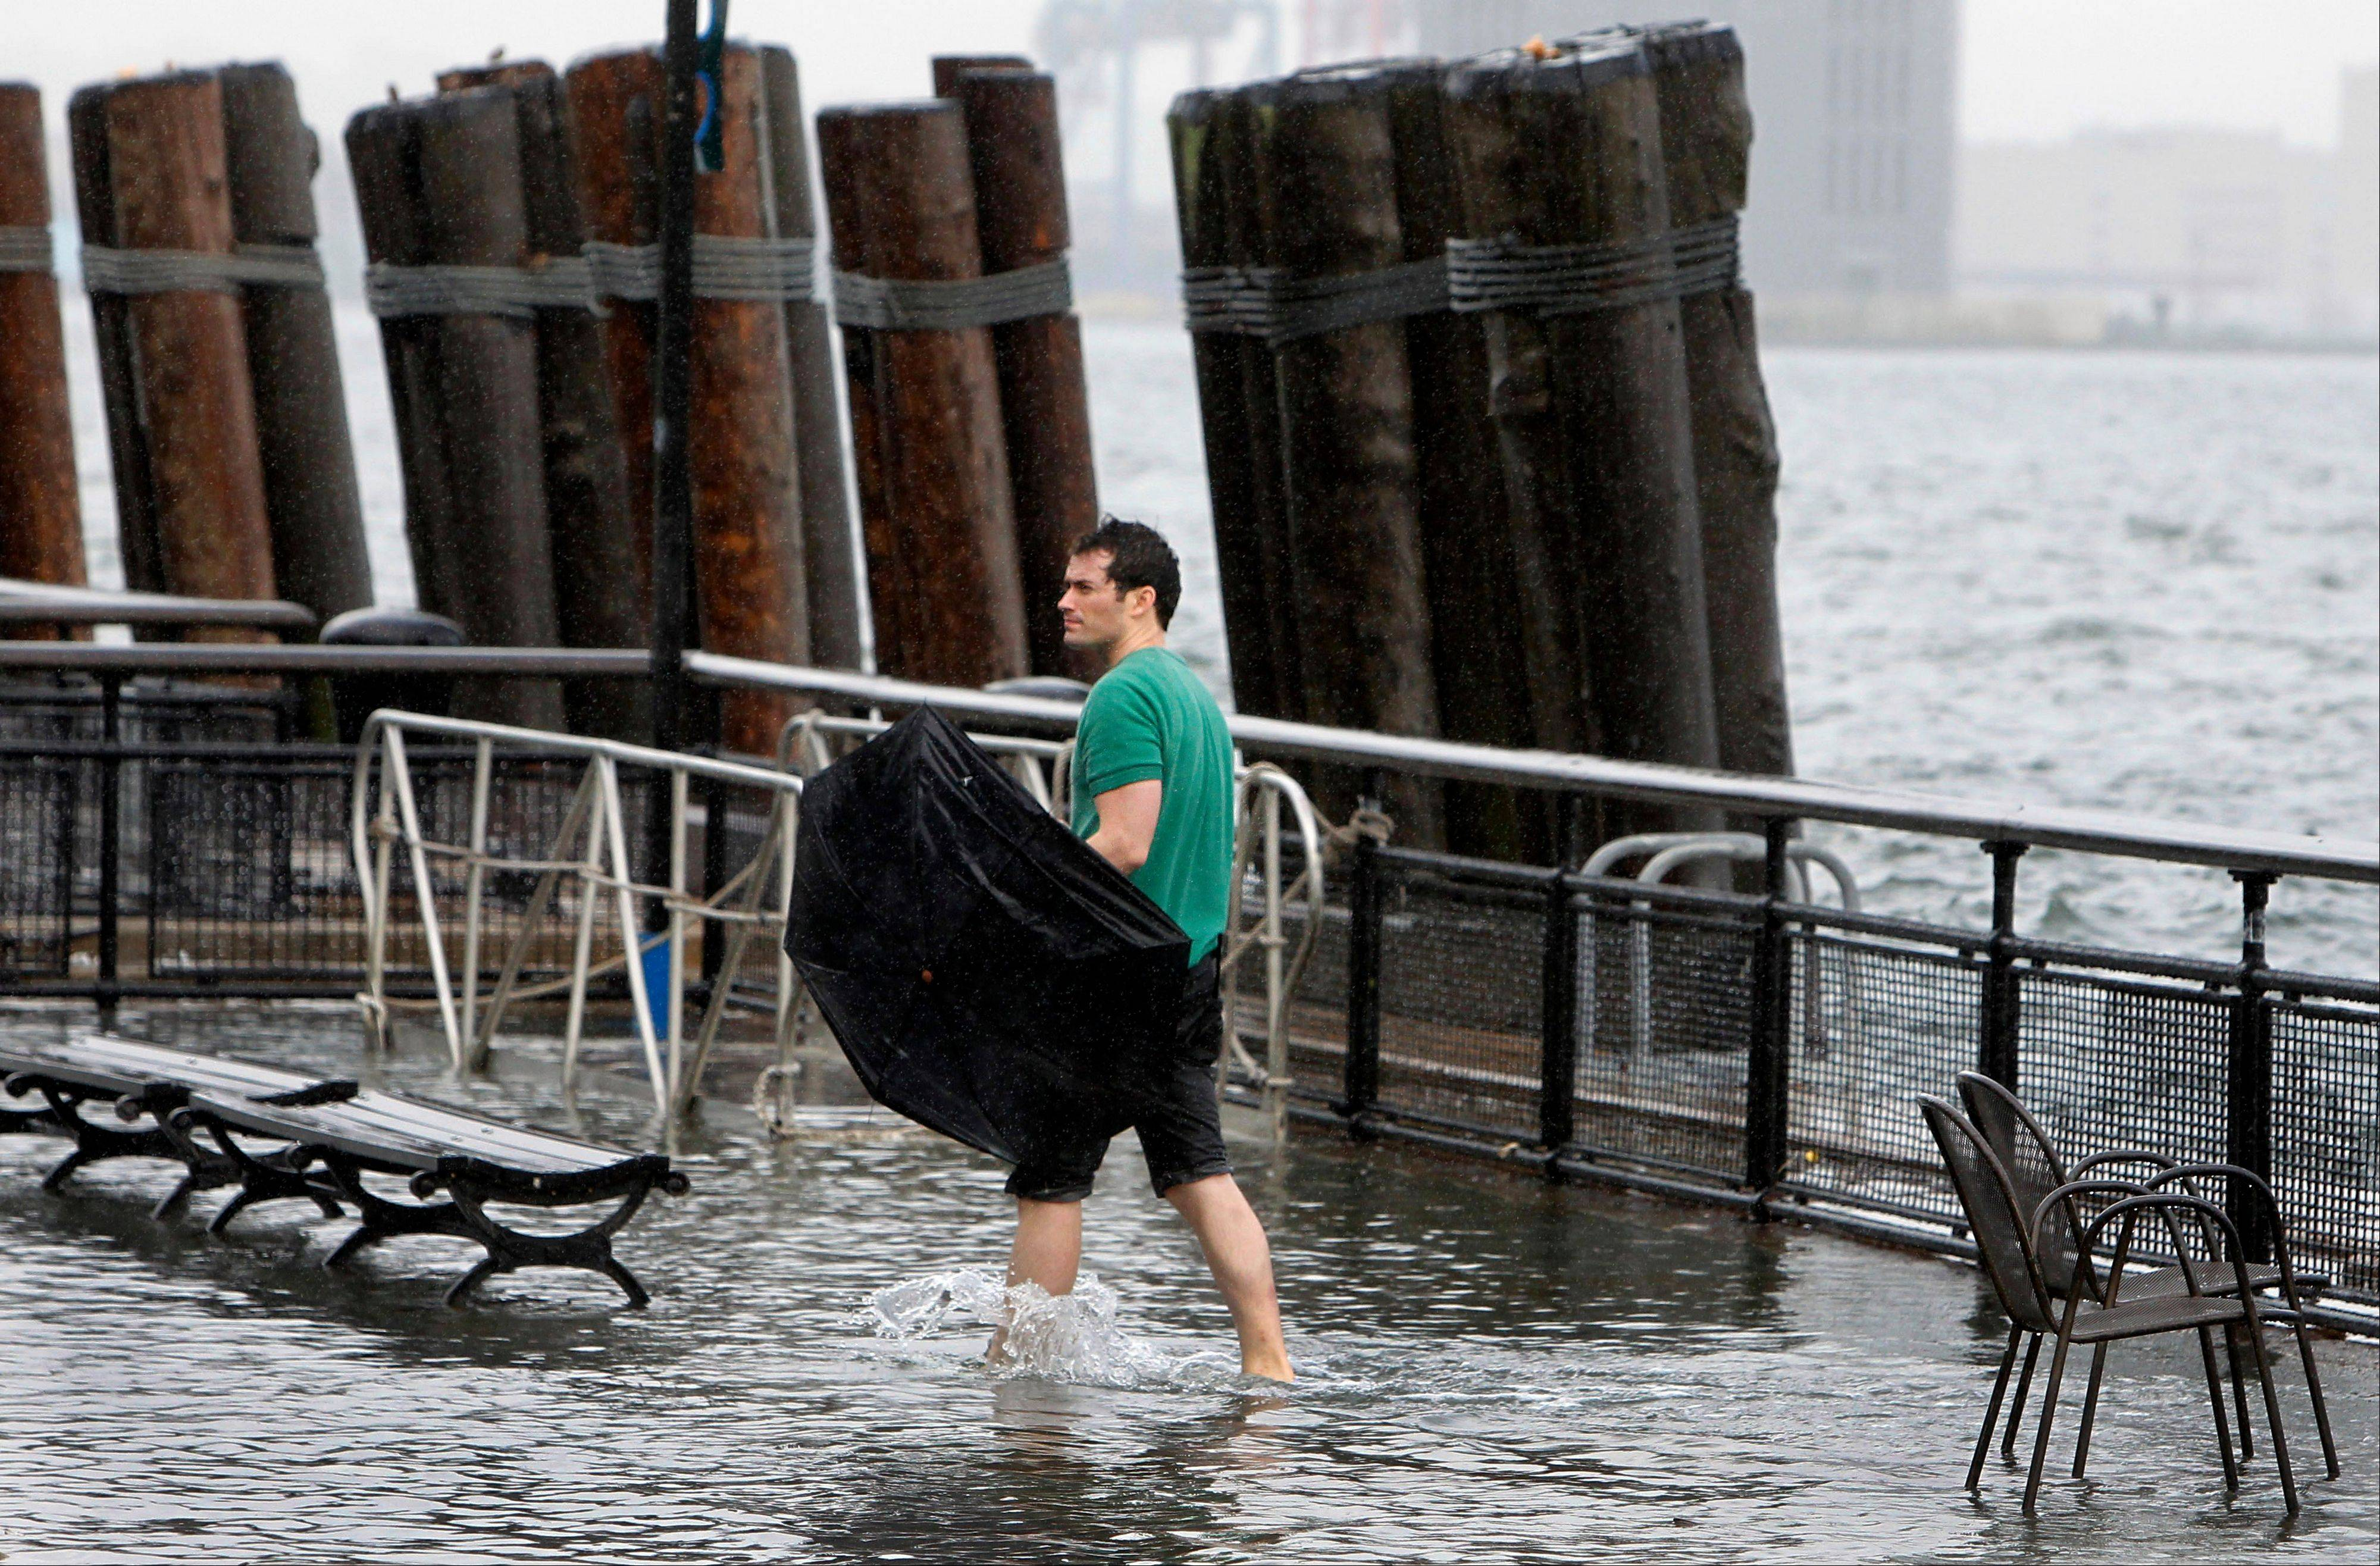 A man walks through flood water along the seawall in Battery Park as Tropical Storm Irene passes through New York, Sunday, August 28, 2011. Seawater surged into the streets of Manhattan on Sunday as Tropical Storm Irene slammed into New York, downgraded from a hurricane but still unleashing furious wind and rain. The flooding threatened Wall Street and the heart of the global financial network.